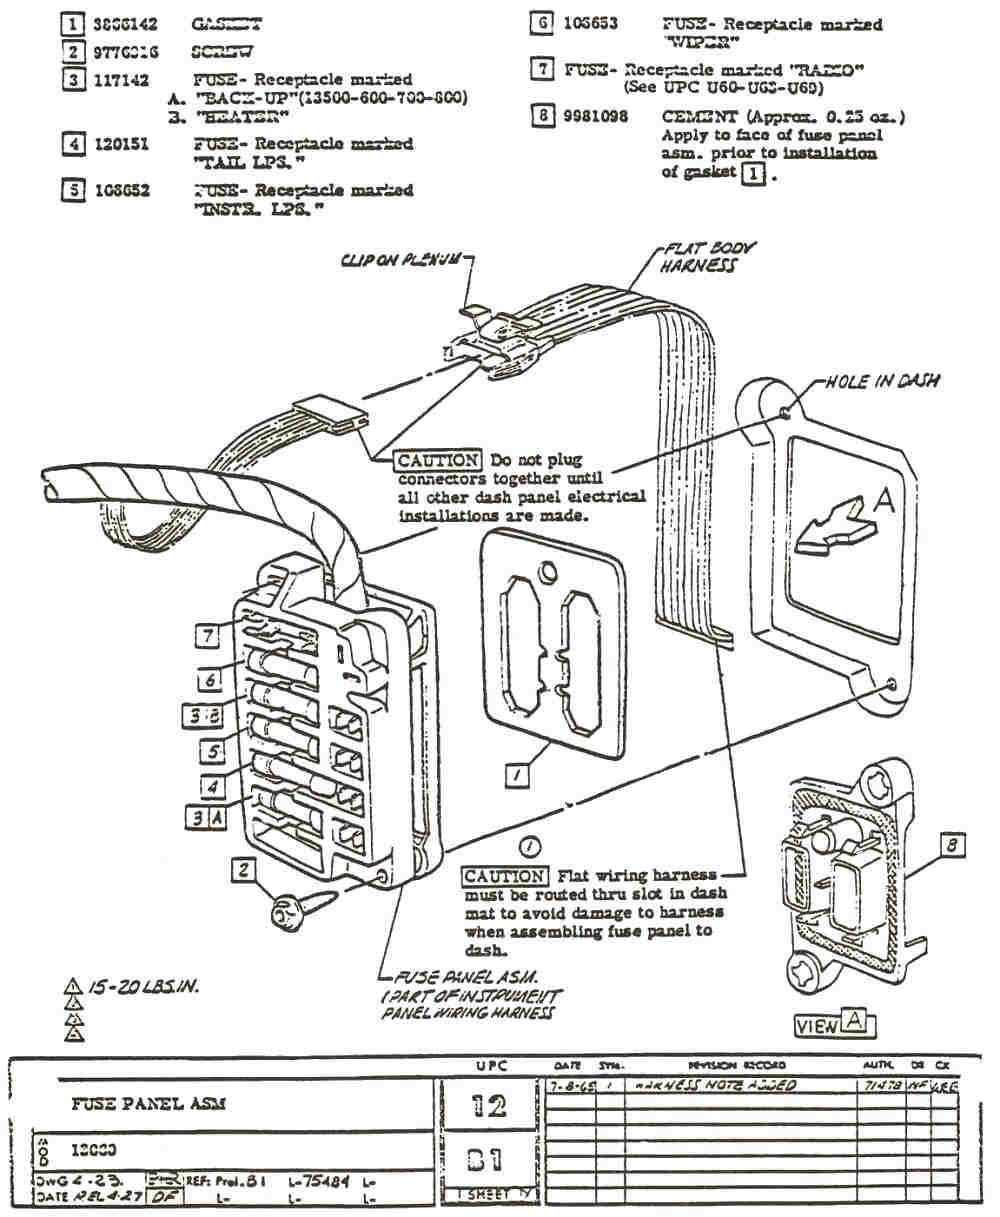 69 Camaro Fuse Box Diagram Wiring Schematics 1969 Color 67 Schematic Block